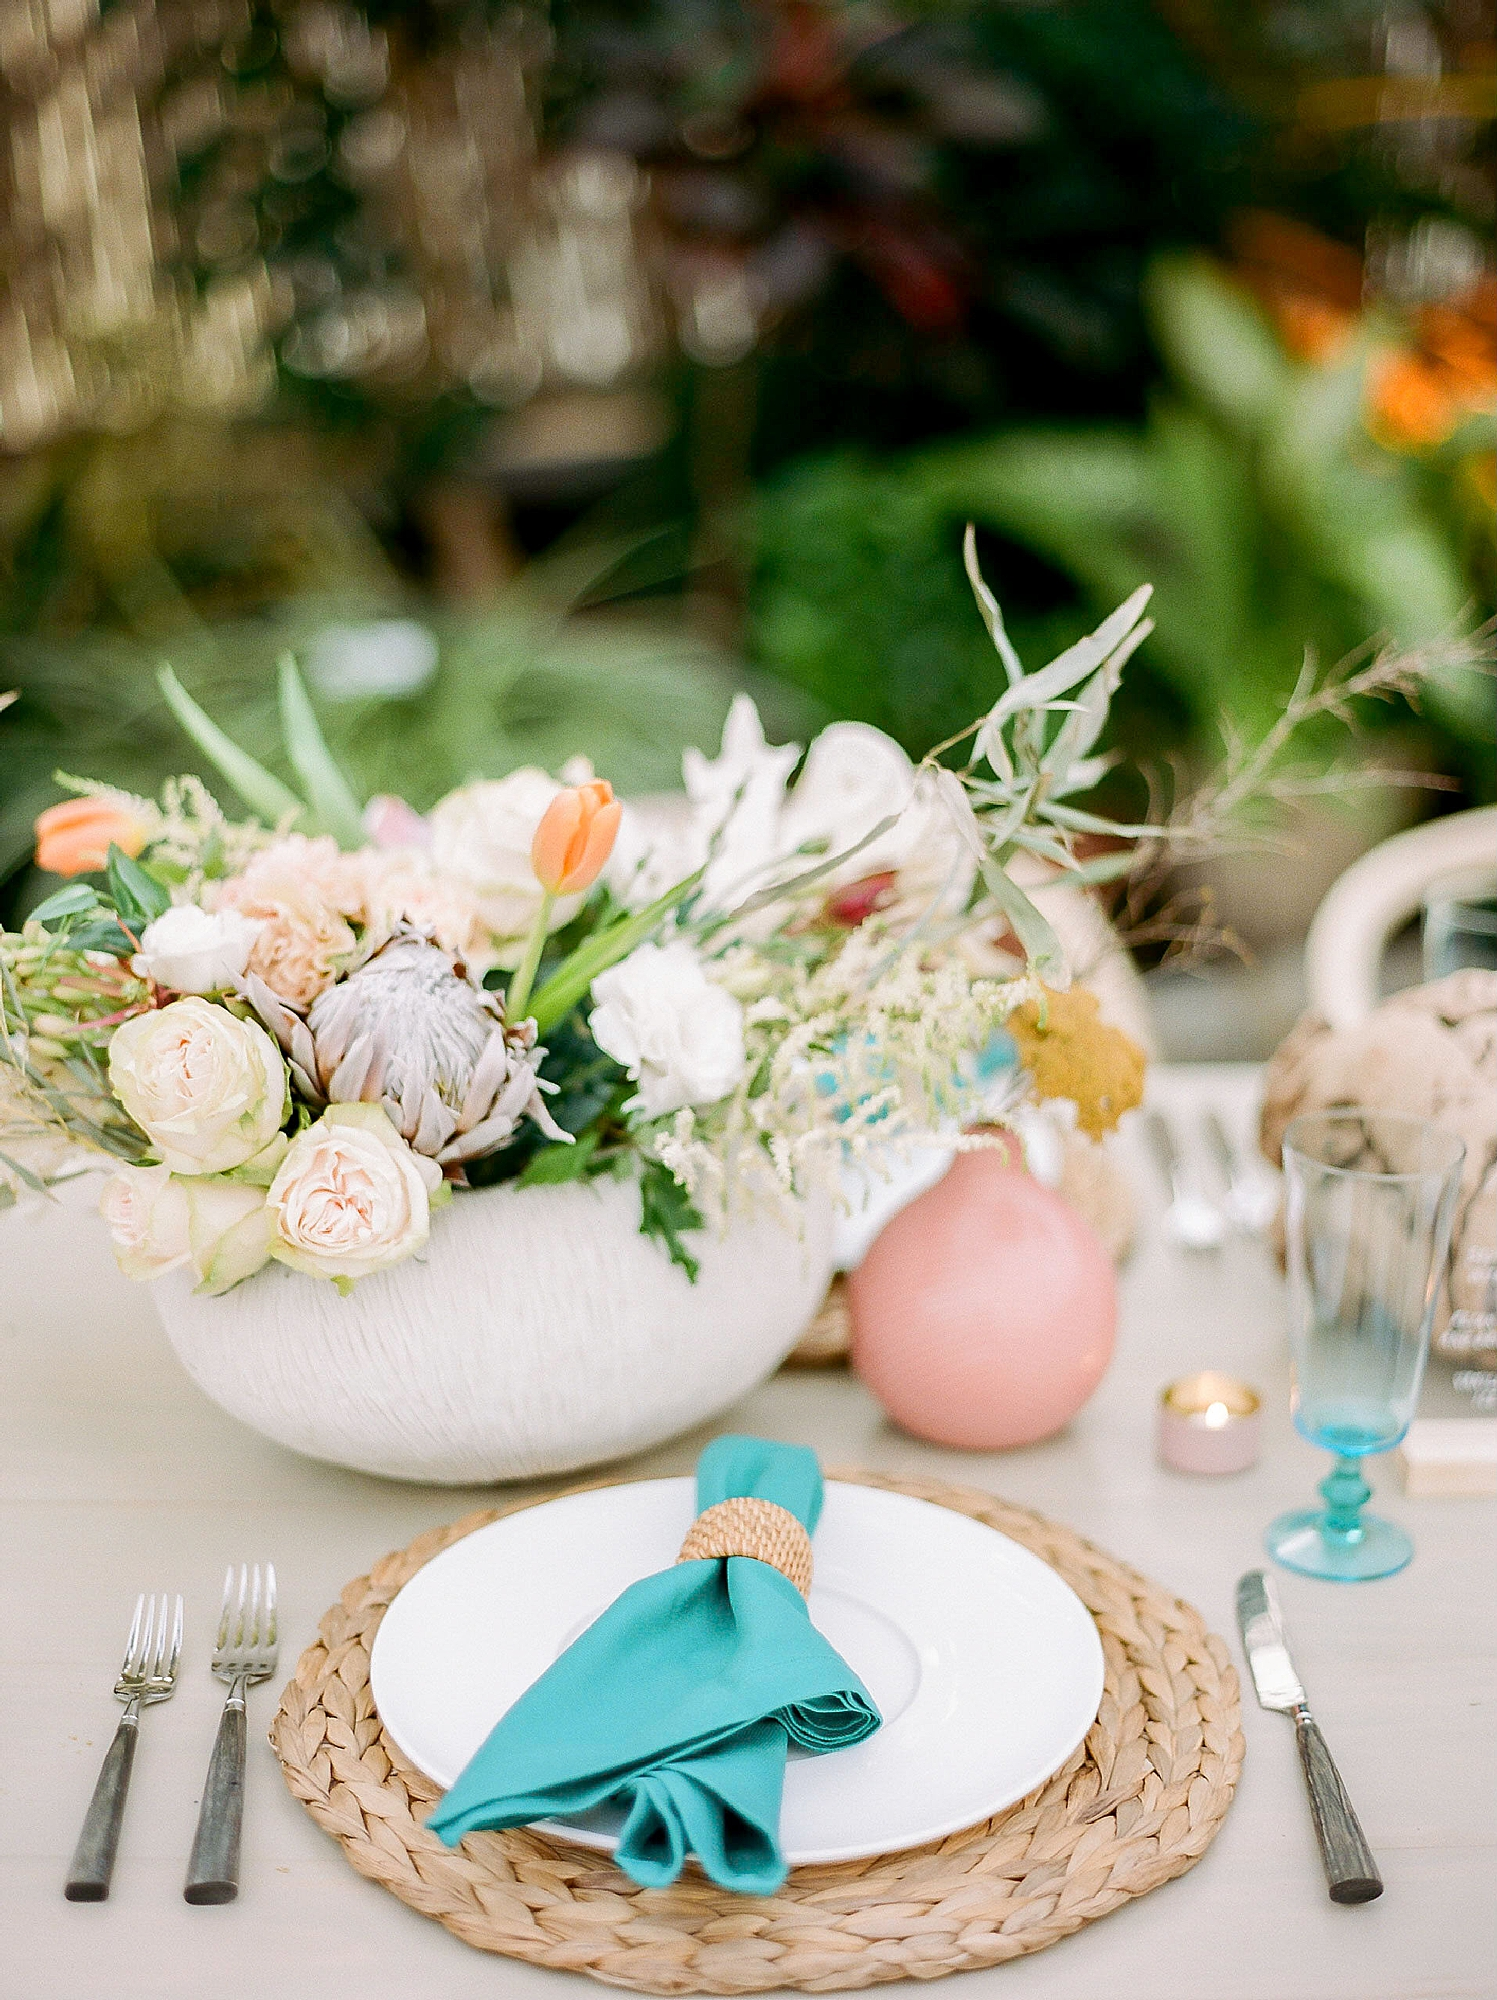 Colorful and Vibrant Wedding Photography at Fairmount Horticultural Center by Magdalena Studios 0035